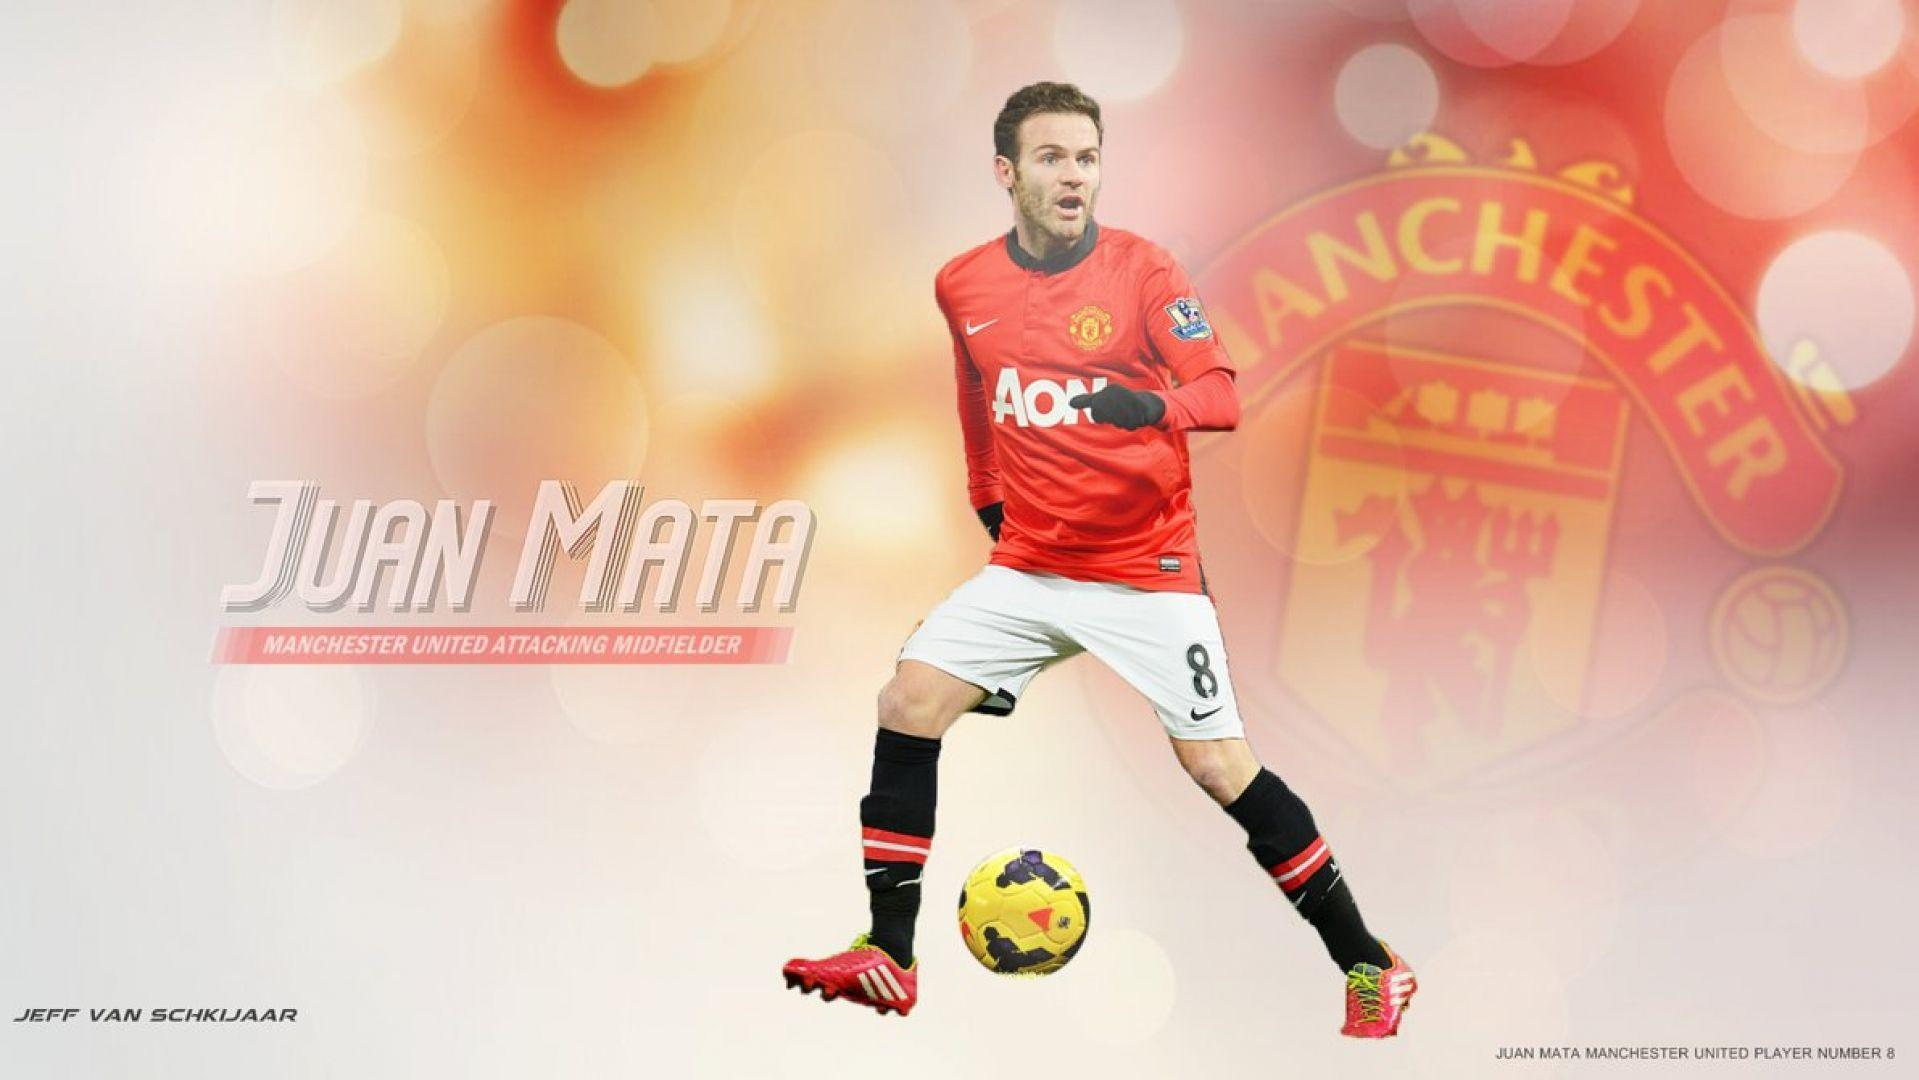 Juan Mata Manchester United Wallpaper | WallpaperPlay